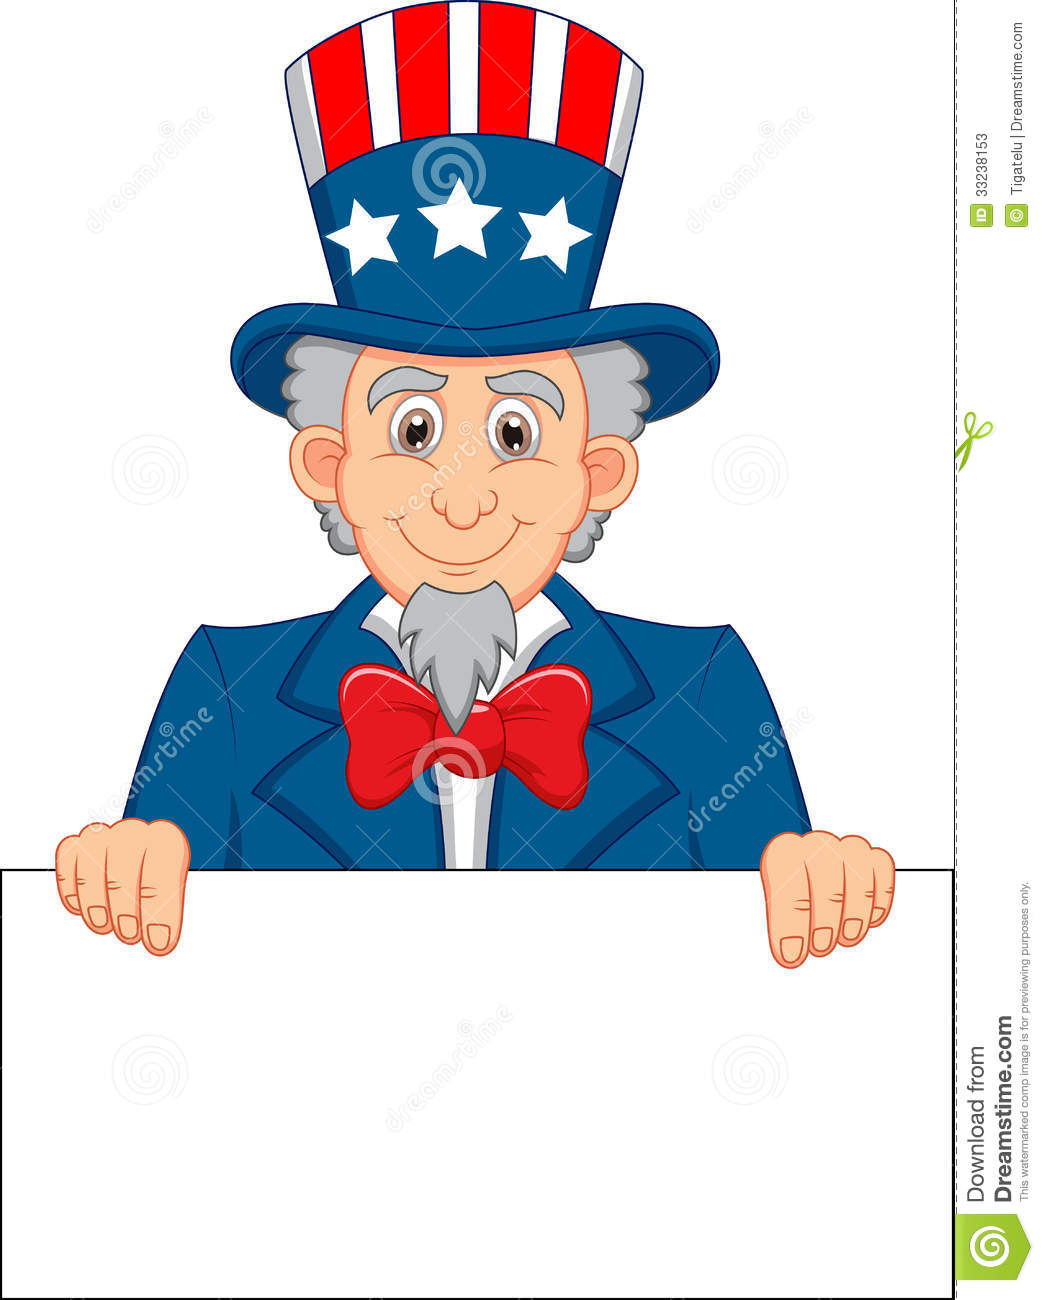 Uncle Sam Cartoon And Blank Sign Stock Photos - Image: 33238153